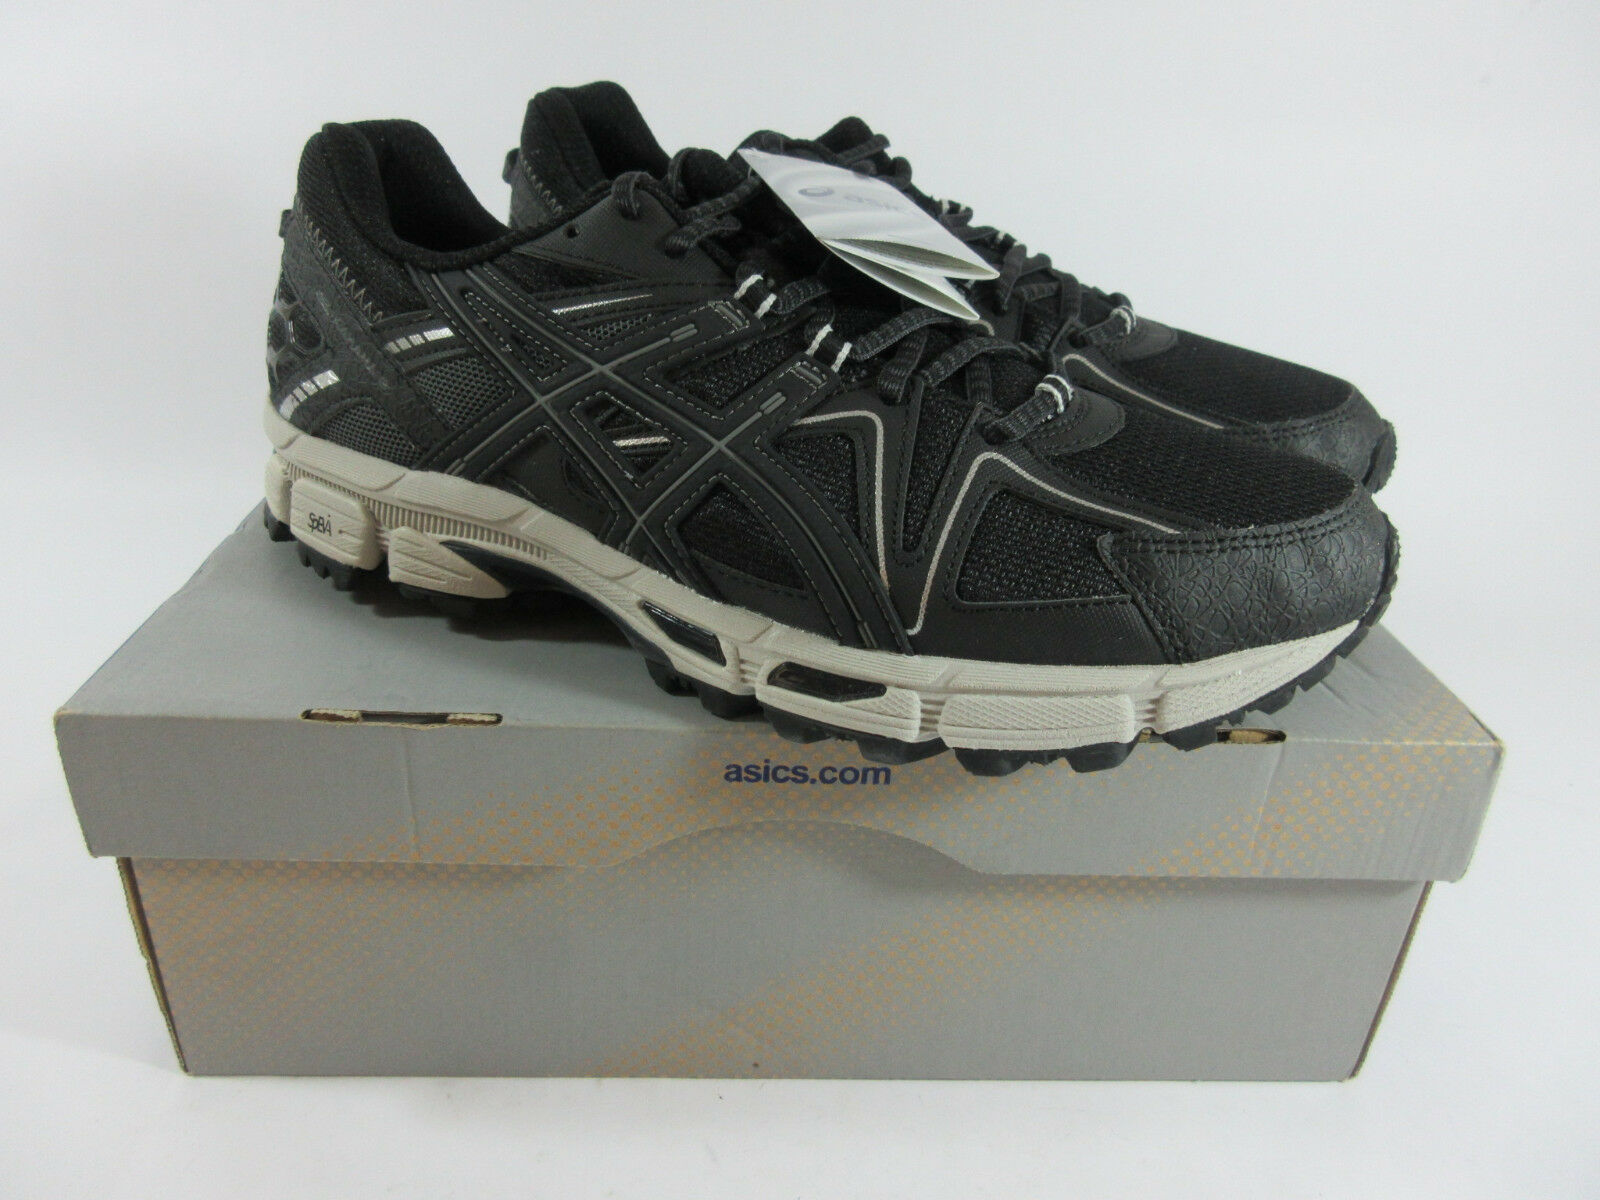 Asics Gel-Kahana 8 Running shoes Black Onyx Silver Mens Size 11